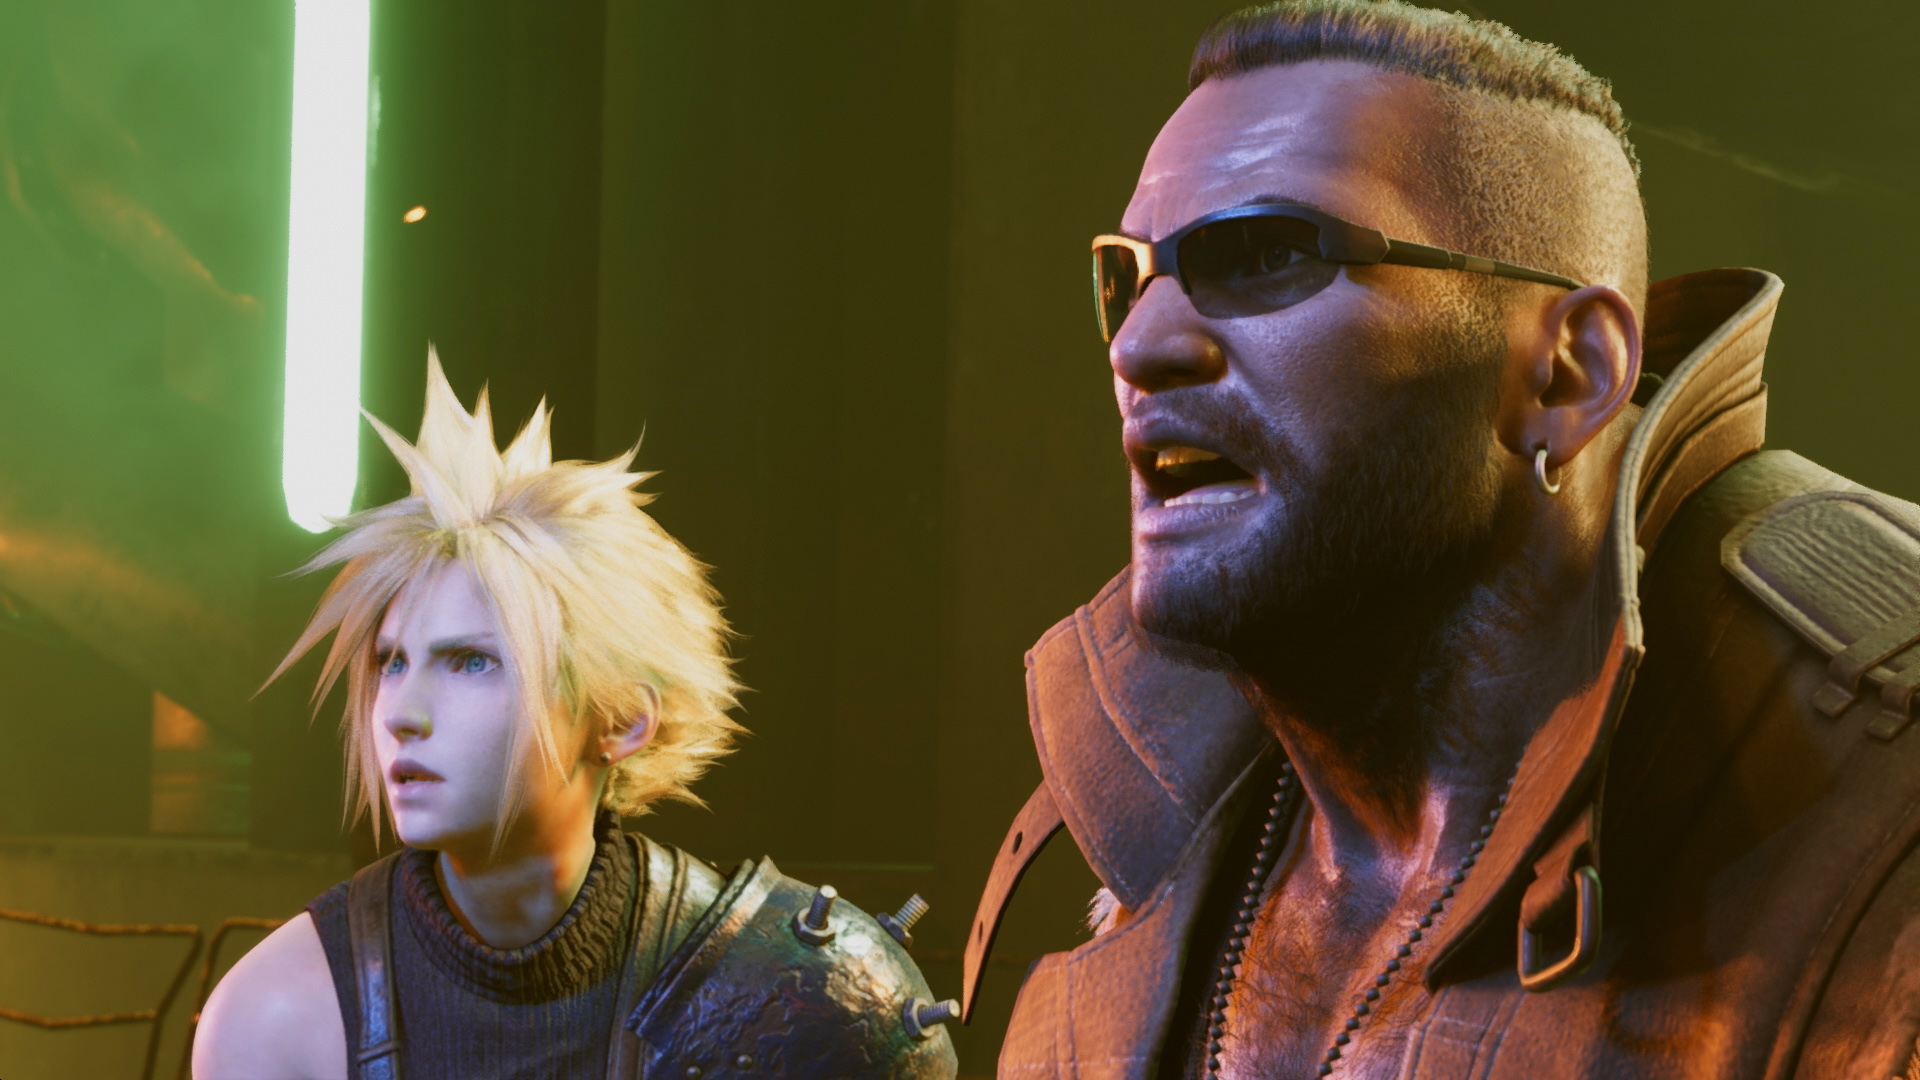 final fantasy vii remake update 1.01